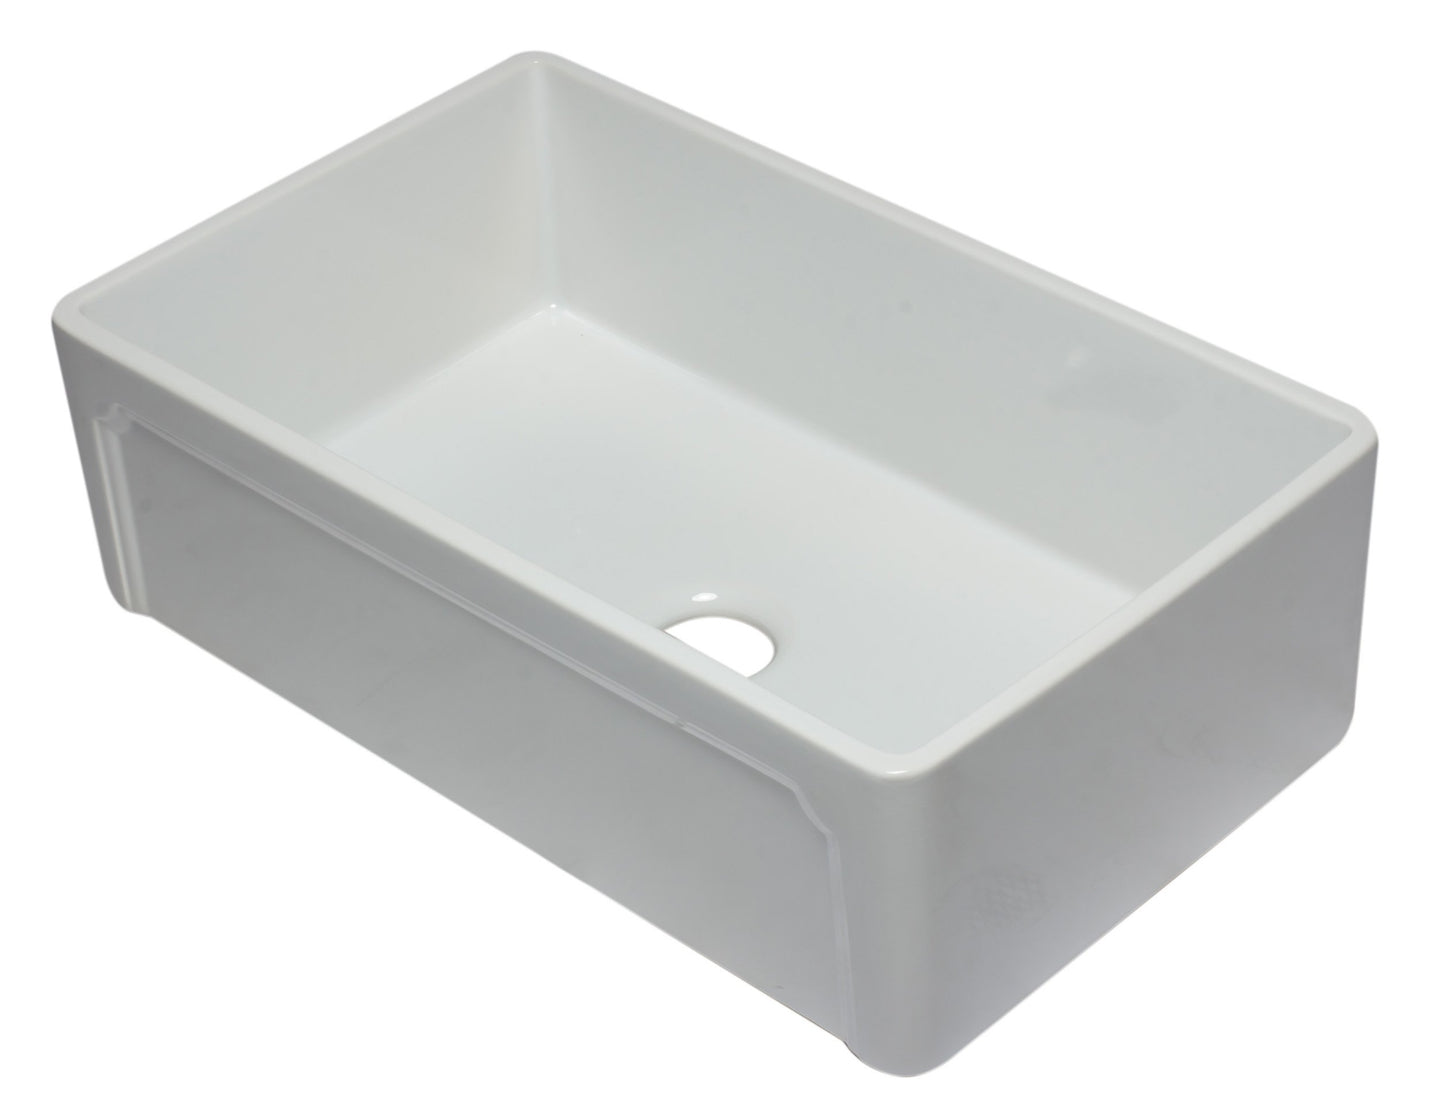 ALFI brand AB3320SB 33 inch Reversible Single Fireclay Farmhouse Kitchen Sink